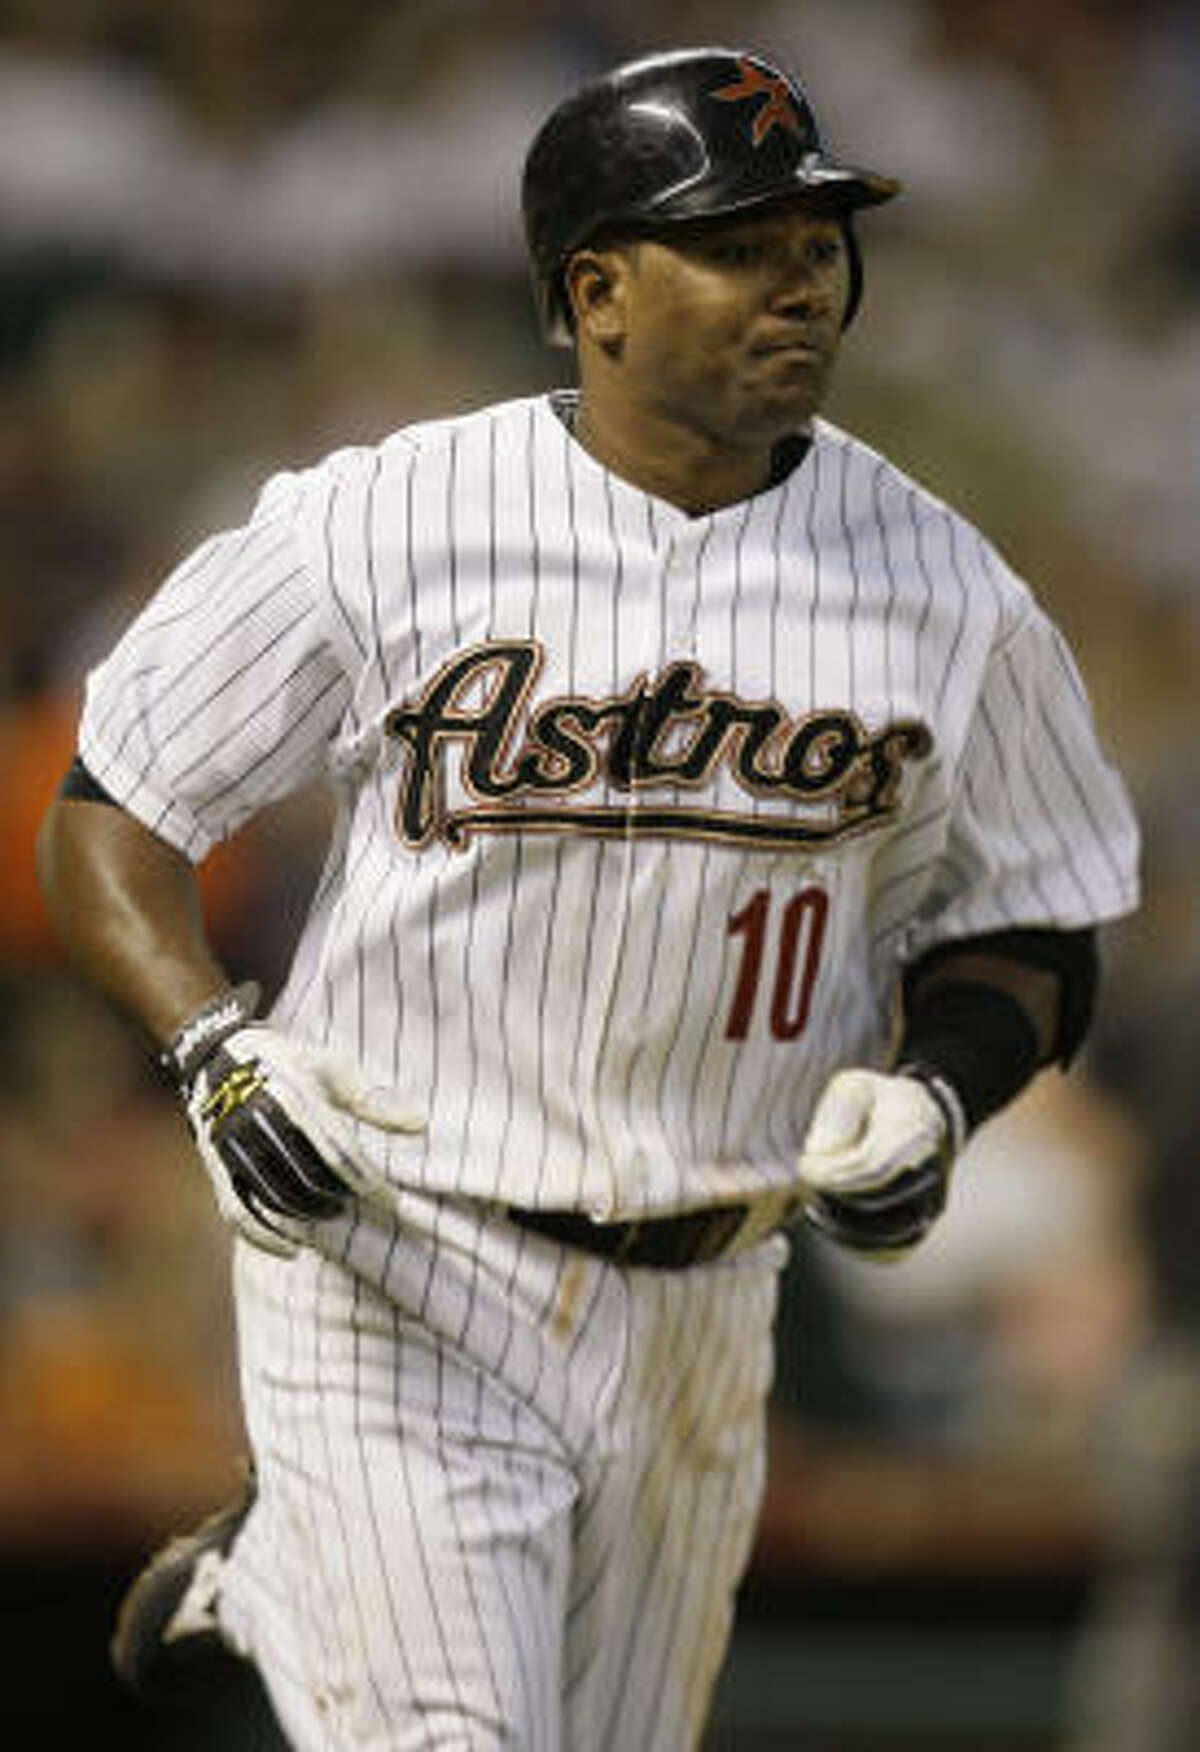 Miguel Tejada is really 33, not 31 as he is listed on baseball records.